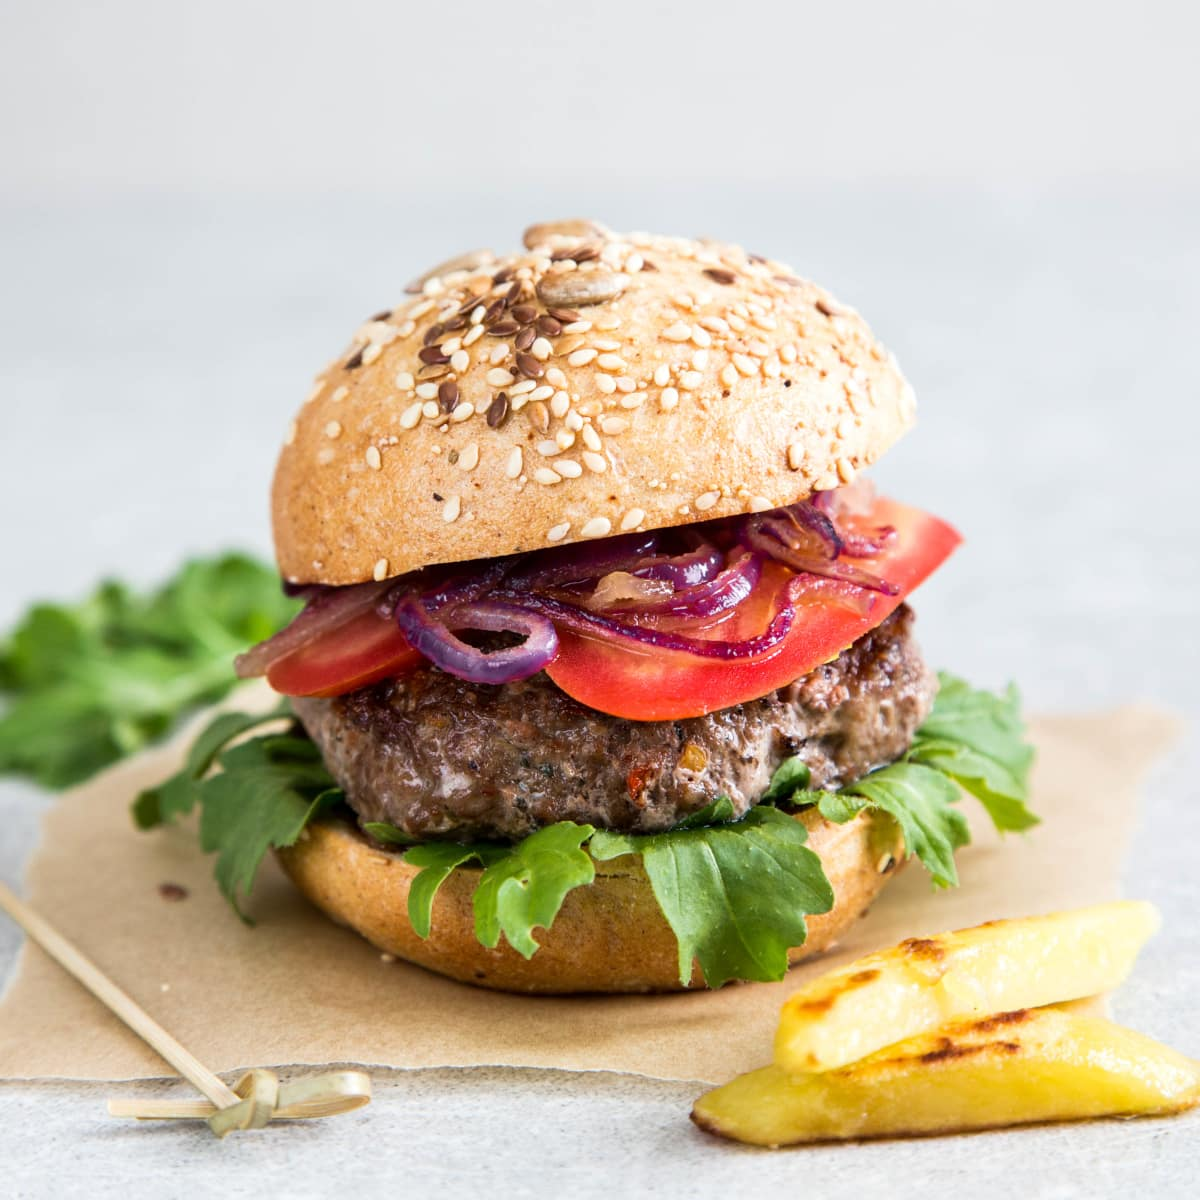 Fresh or frozen air fryer hamburgers from scratch topped with tomatoes, red onions, and lettuce served on a hamburger bun. A couple of air fryer French fries are in the foreground